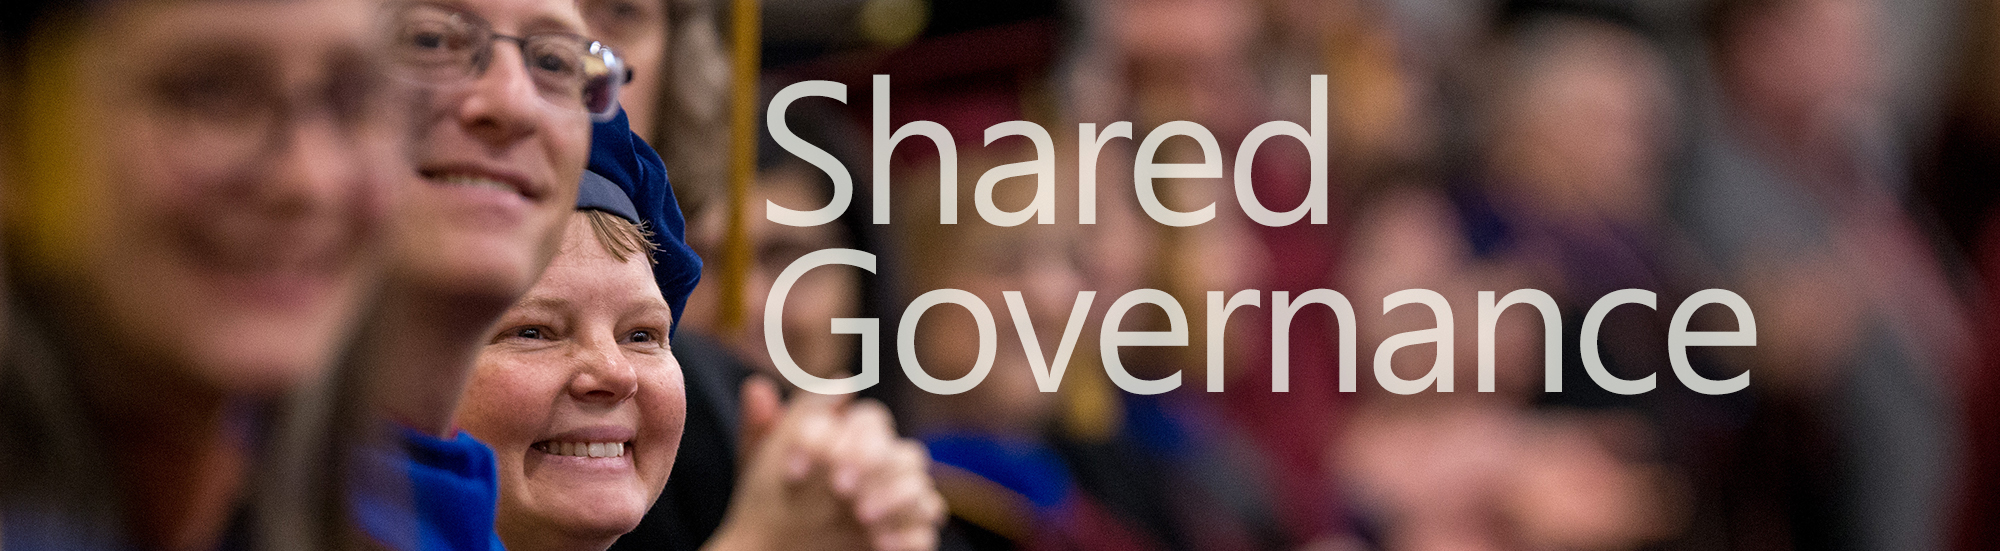 Shared Governance - image faculty clapping at Commencement